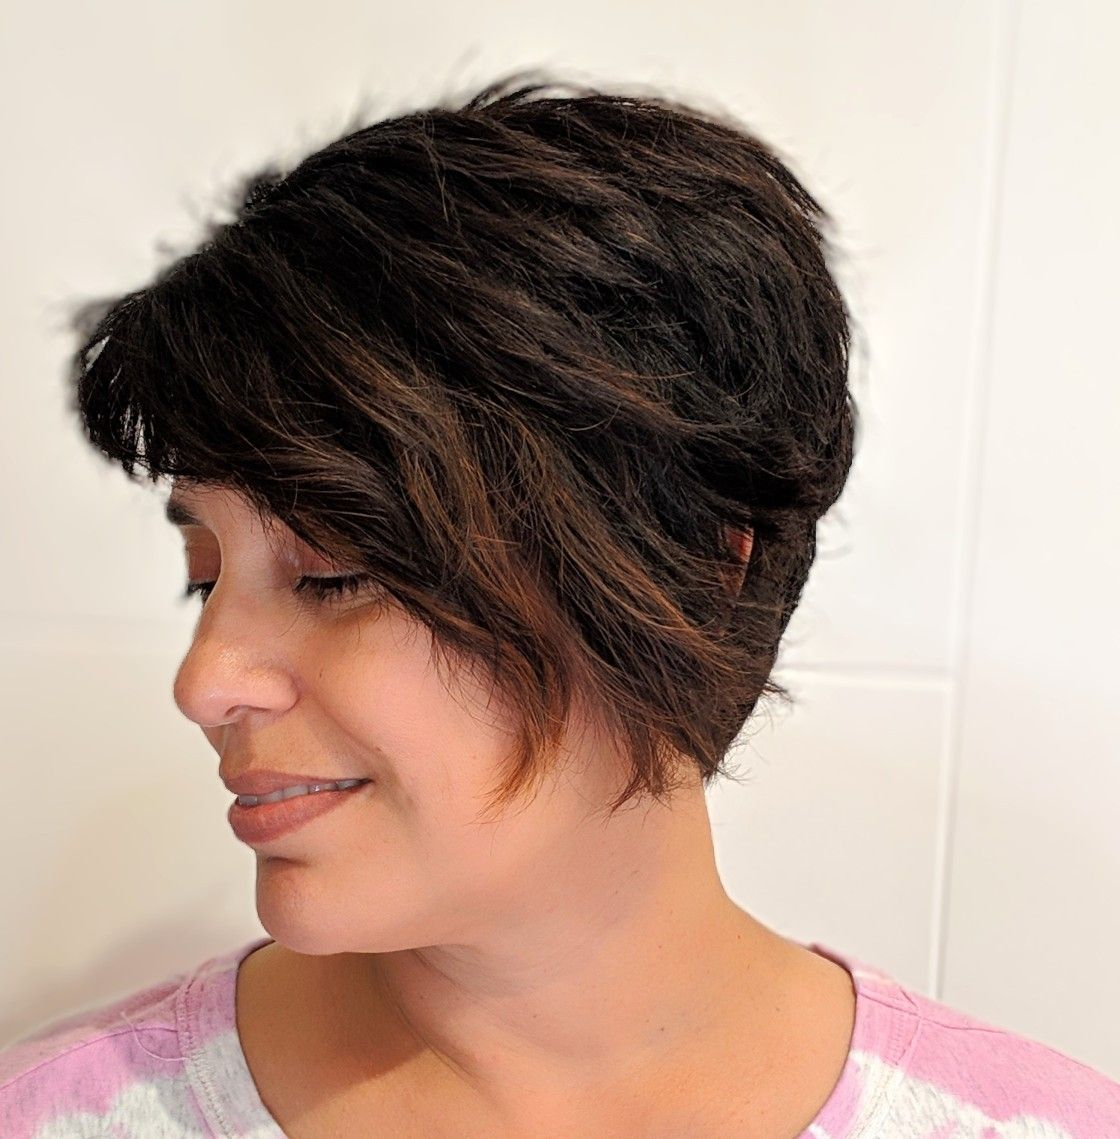 Short Hair And A Beautiful Profile Goddess Hairstyles Best Hair Stylist Cool Hairstyles